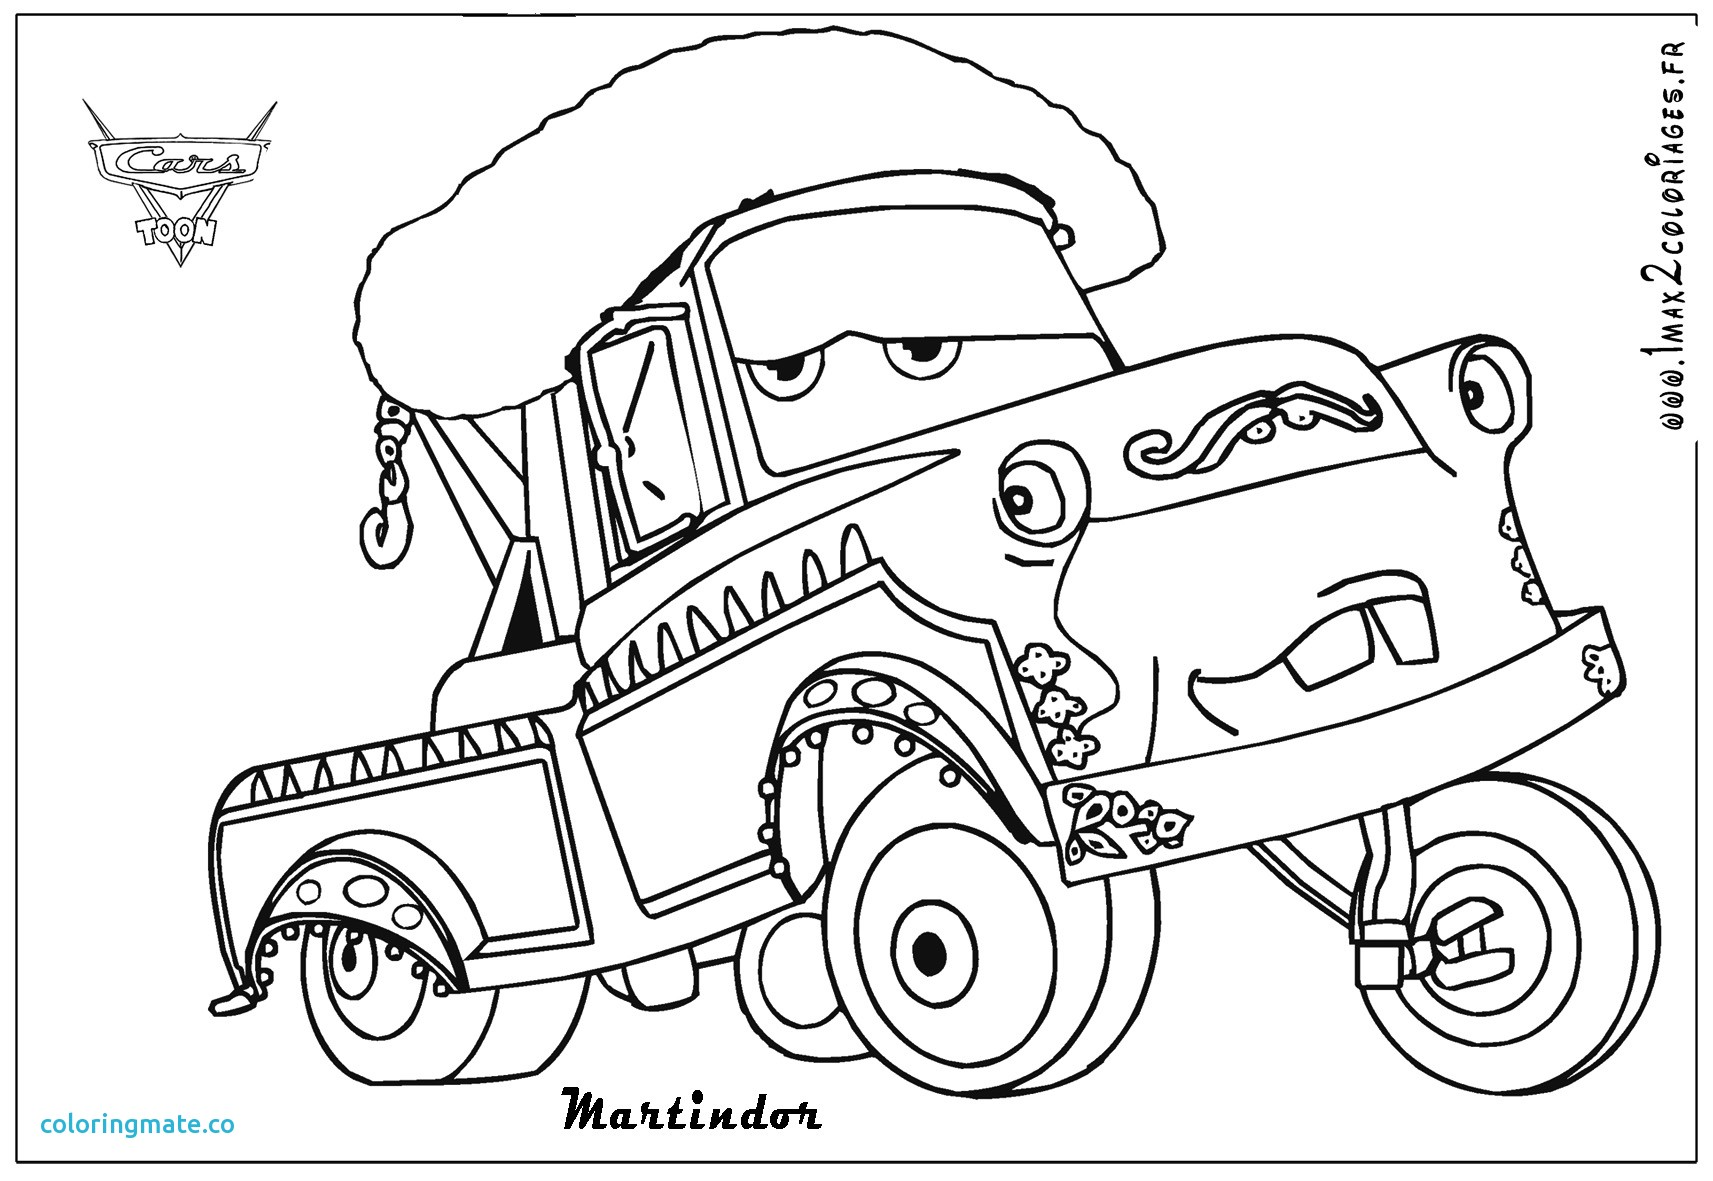 cars 2 drawing pictures cars 2 for kids cars 2 kids coloring pages drawing 2 cars pictures